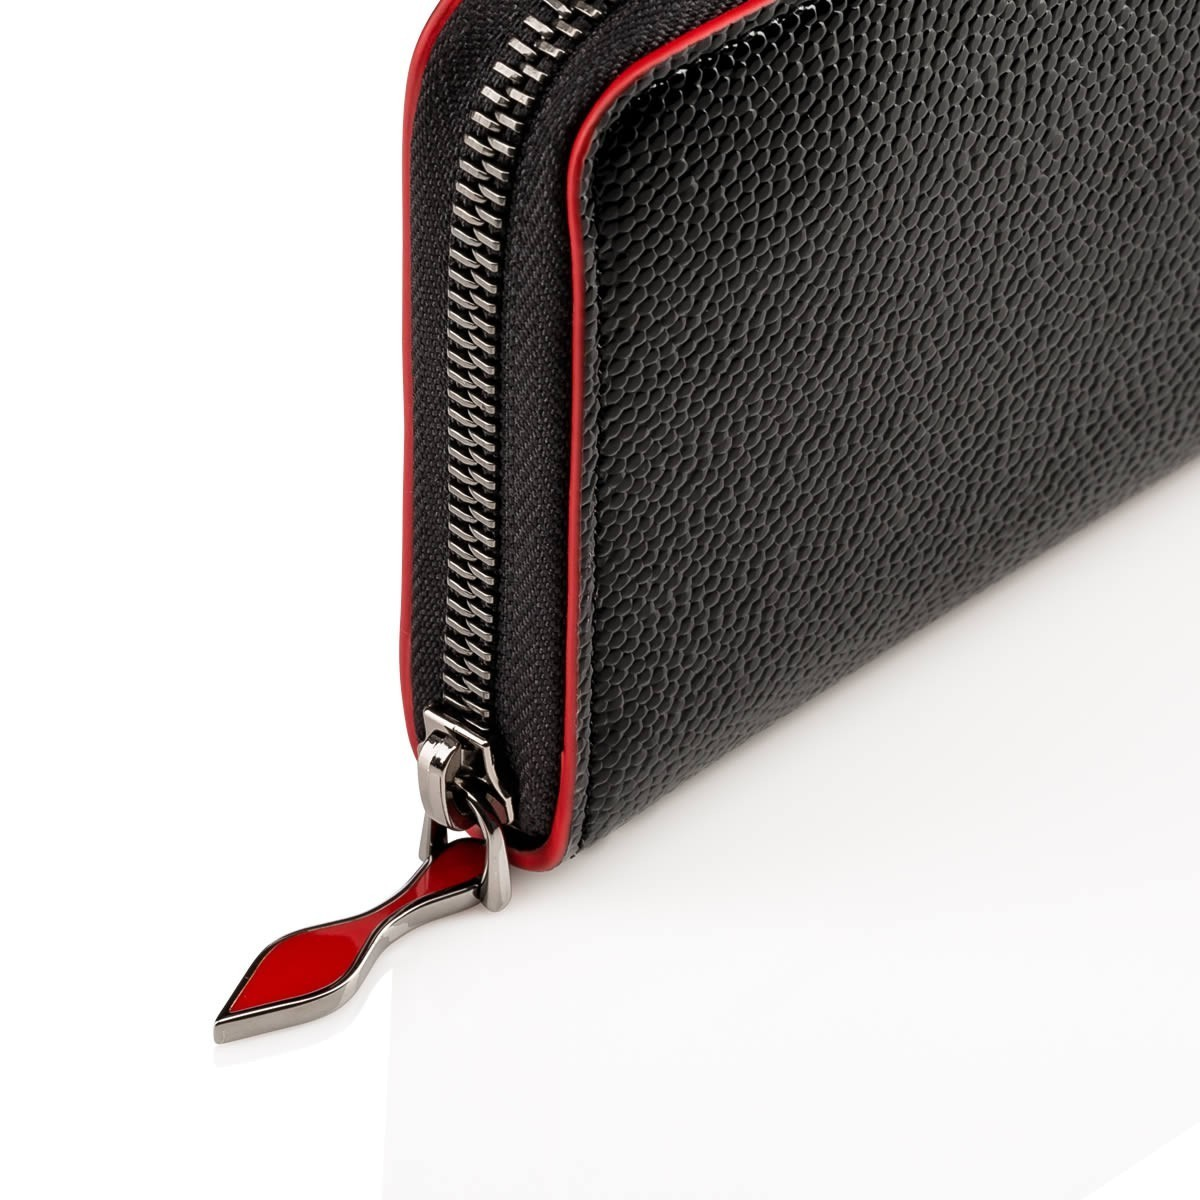 【Christian Louboutin】Panettone Zipped Continental Wallet